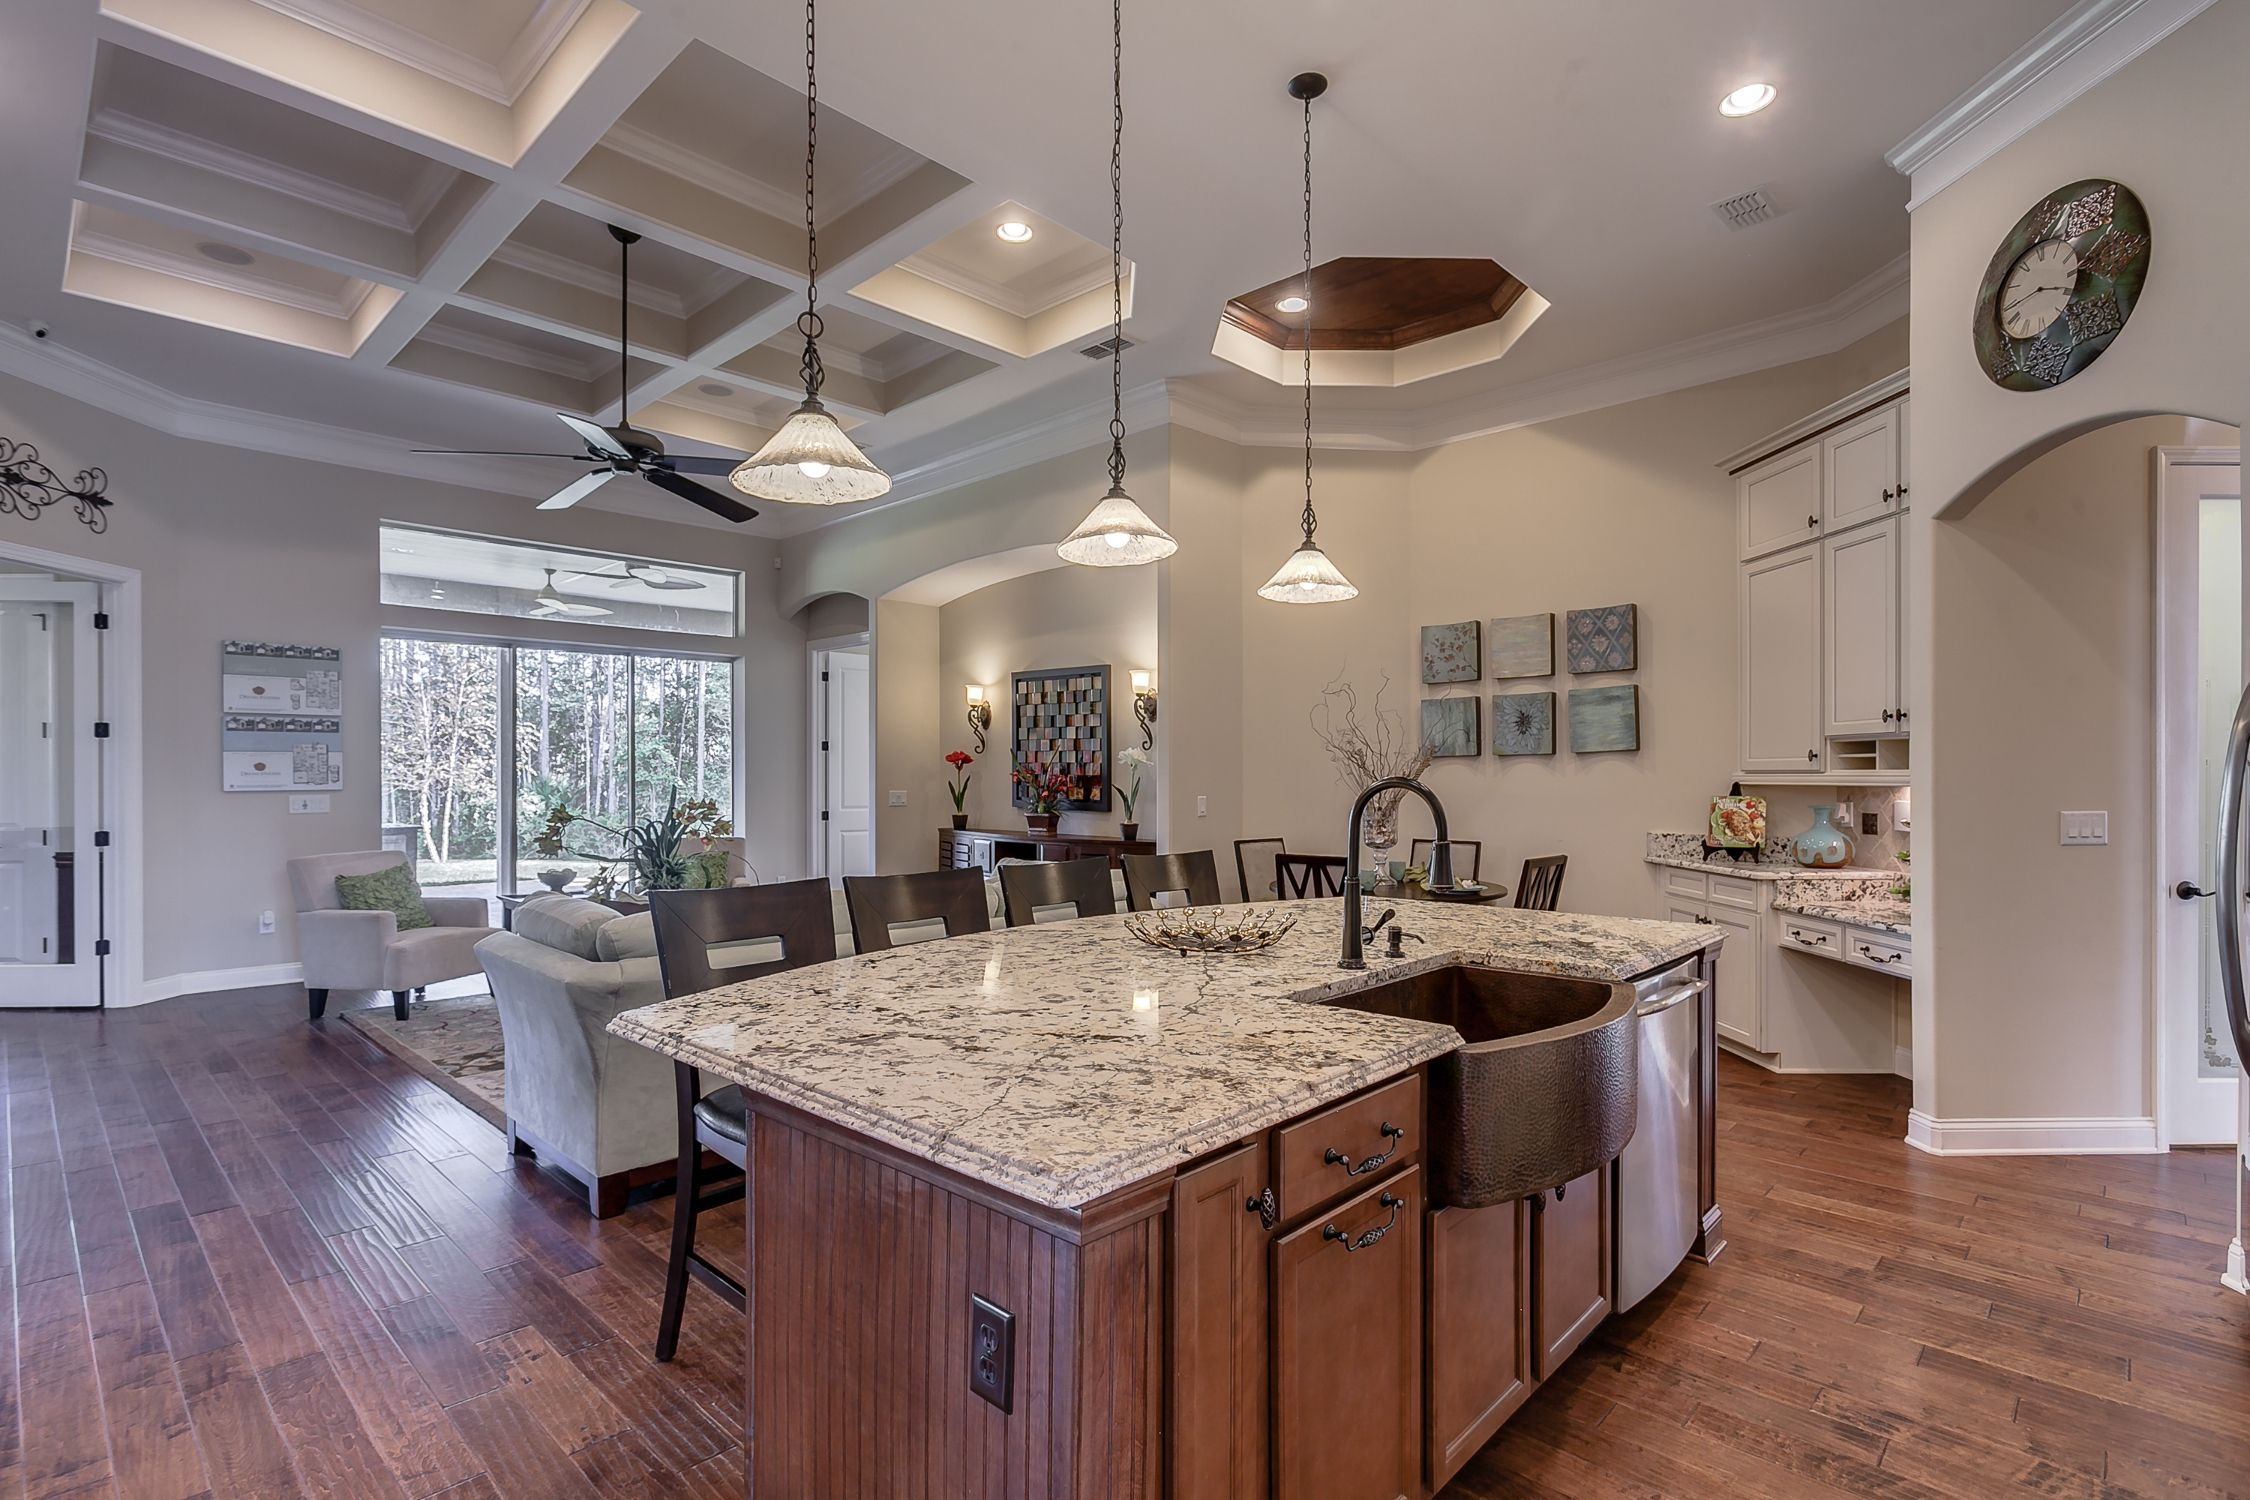 The Valencia Ii Model Kitchen View By Dream Finders Homes Of Palms At Nocatee